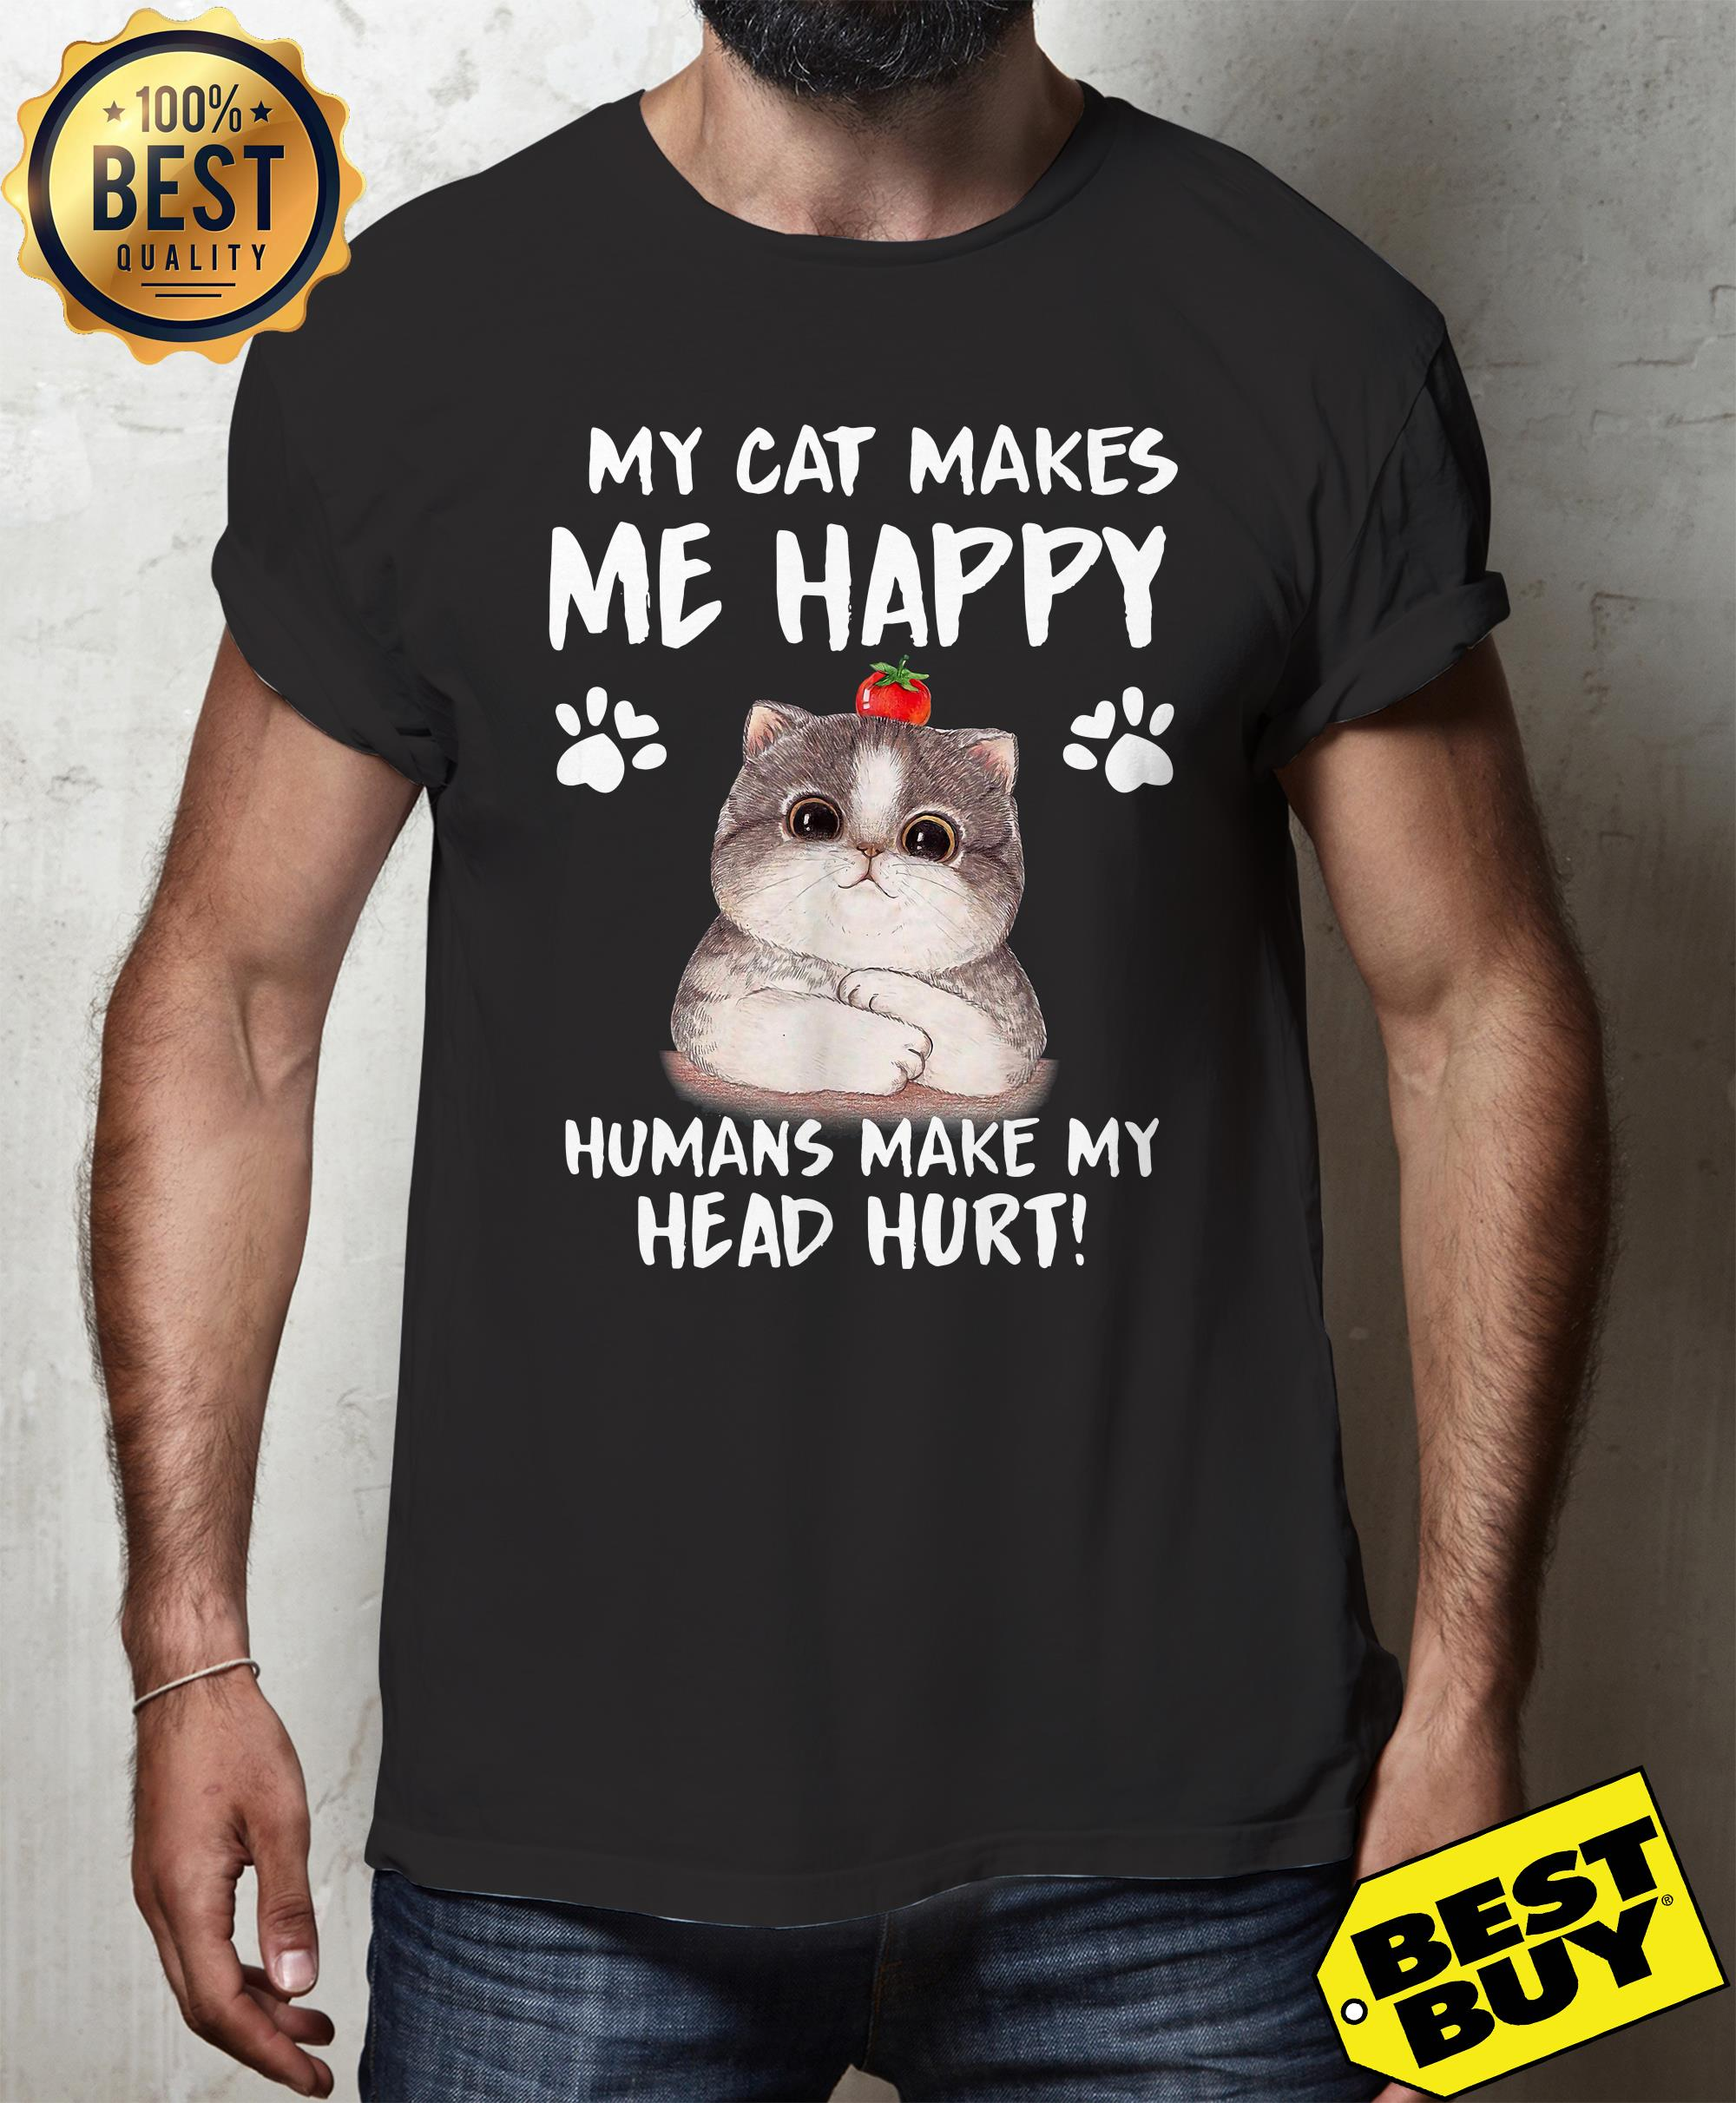 My Cat Makes Me Happy Humans Make My Head Hurt shirt